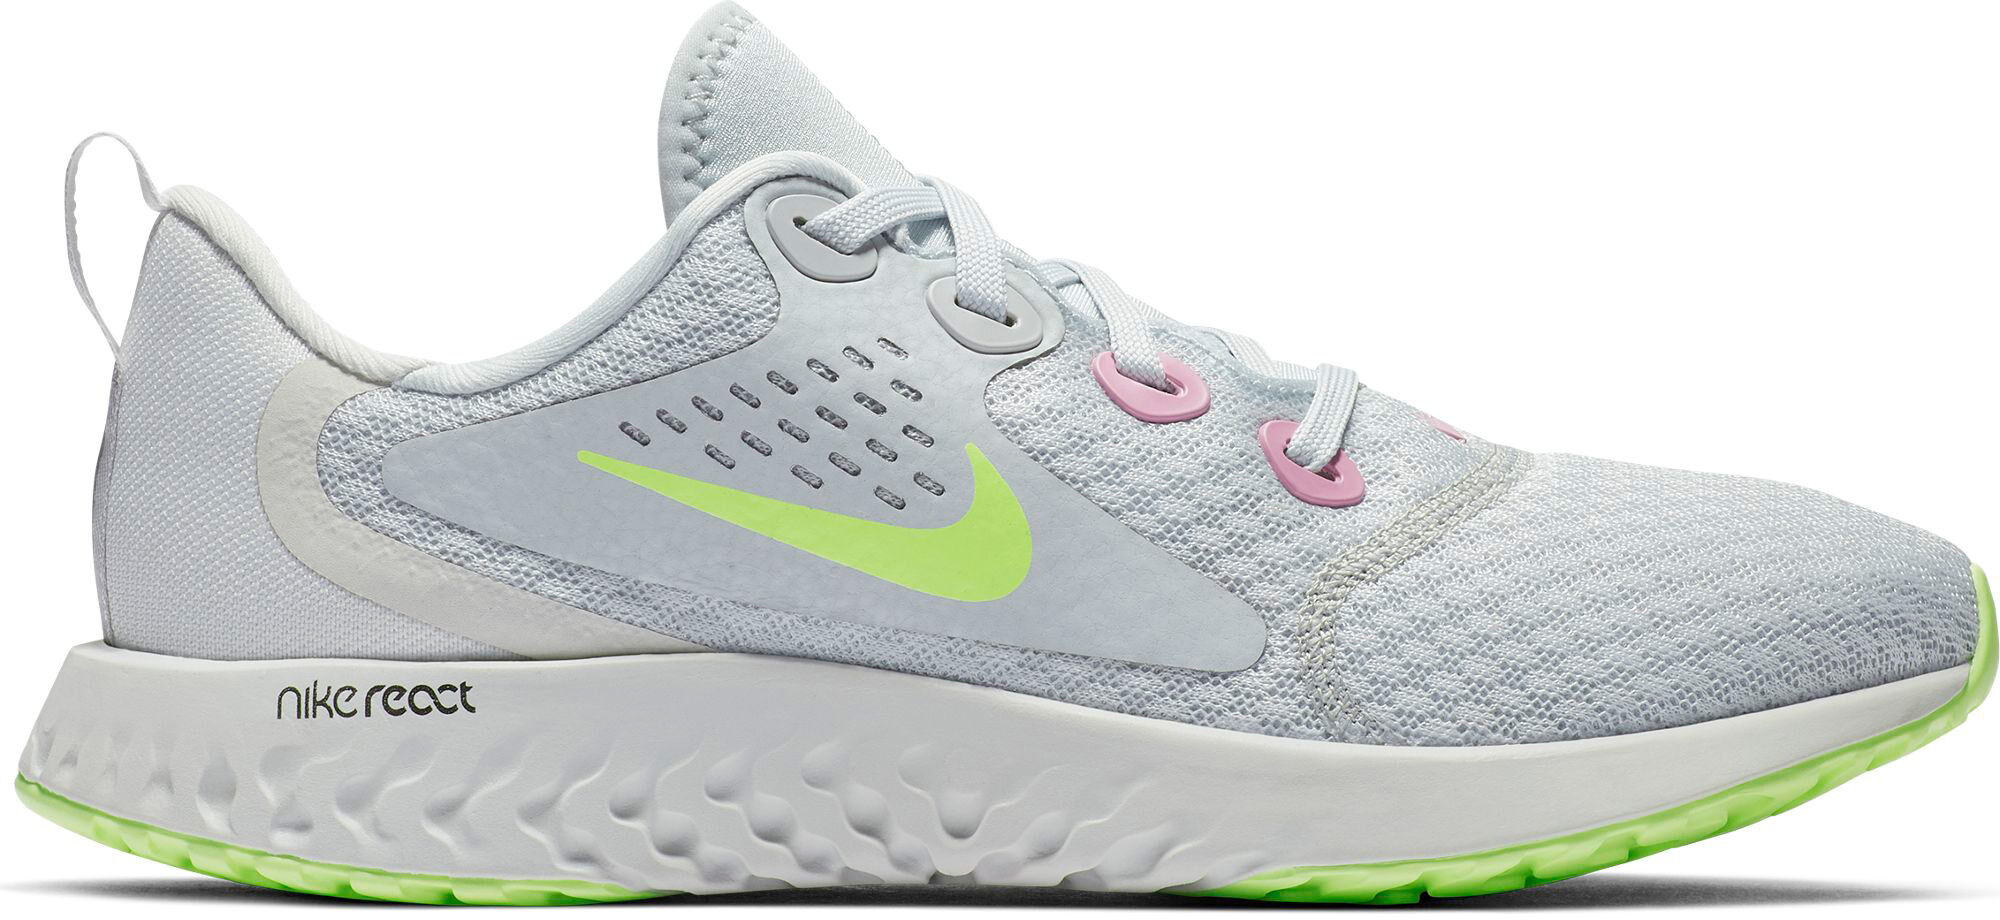 nike react legend mujer